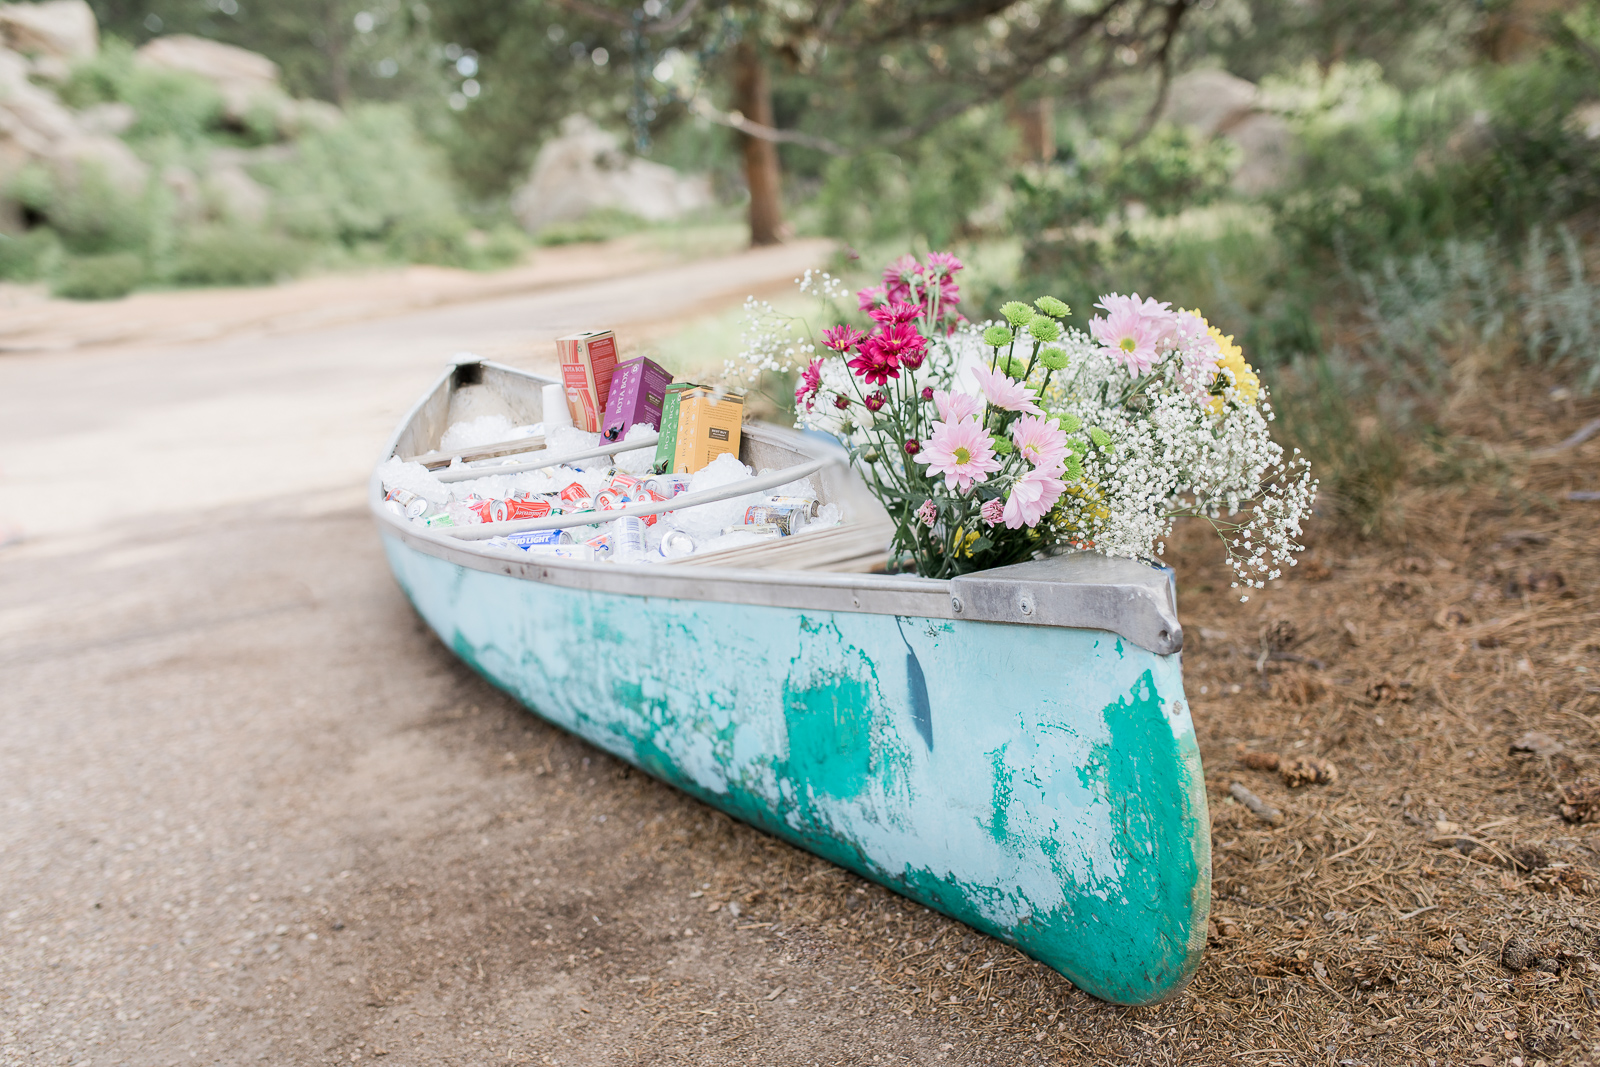 vintage canoe as a cooler for wedding reception